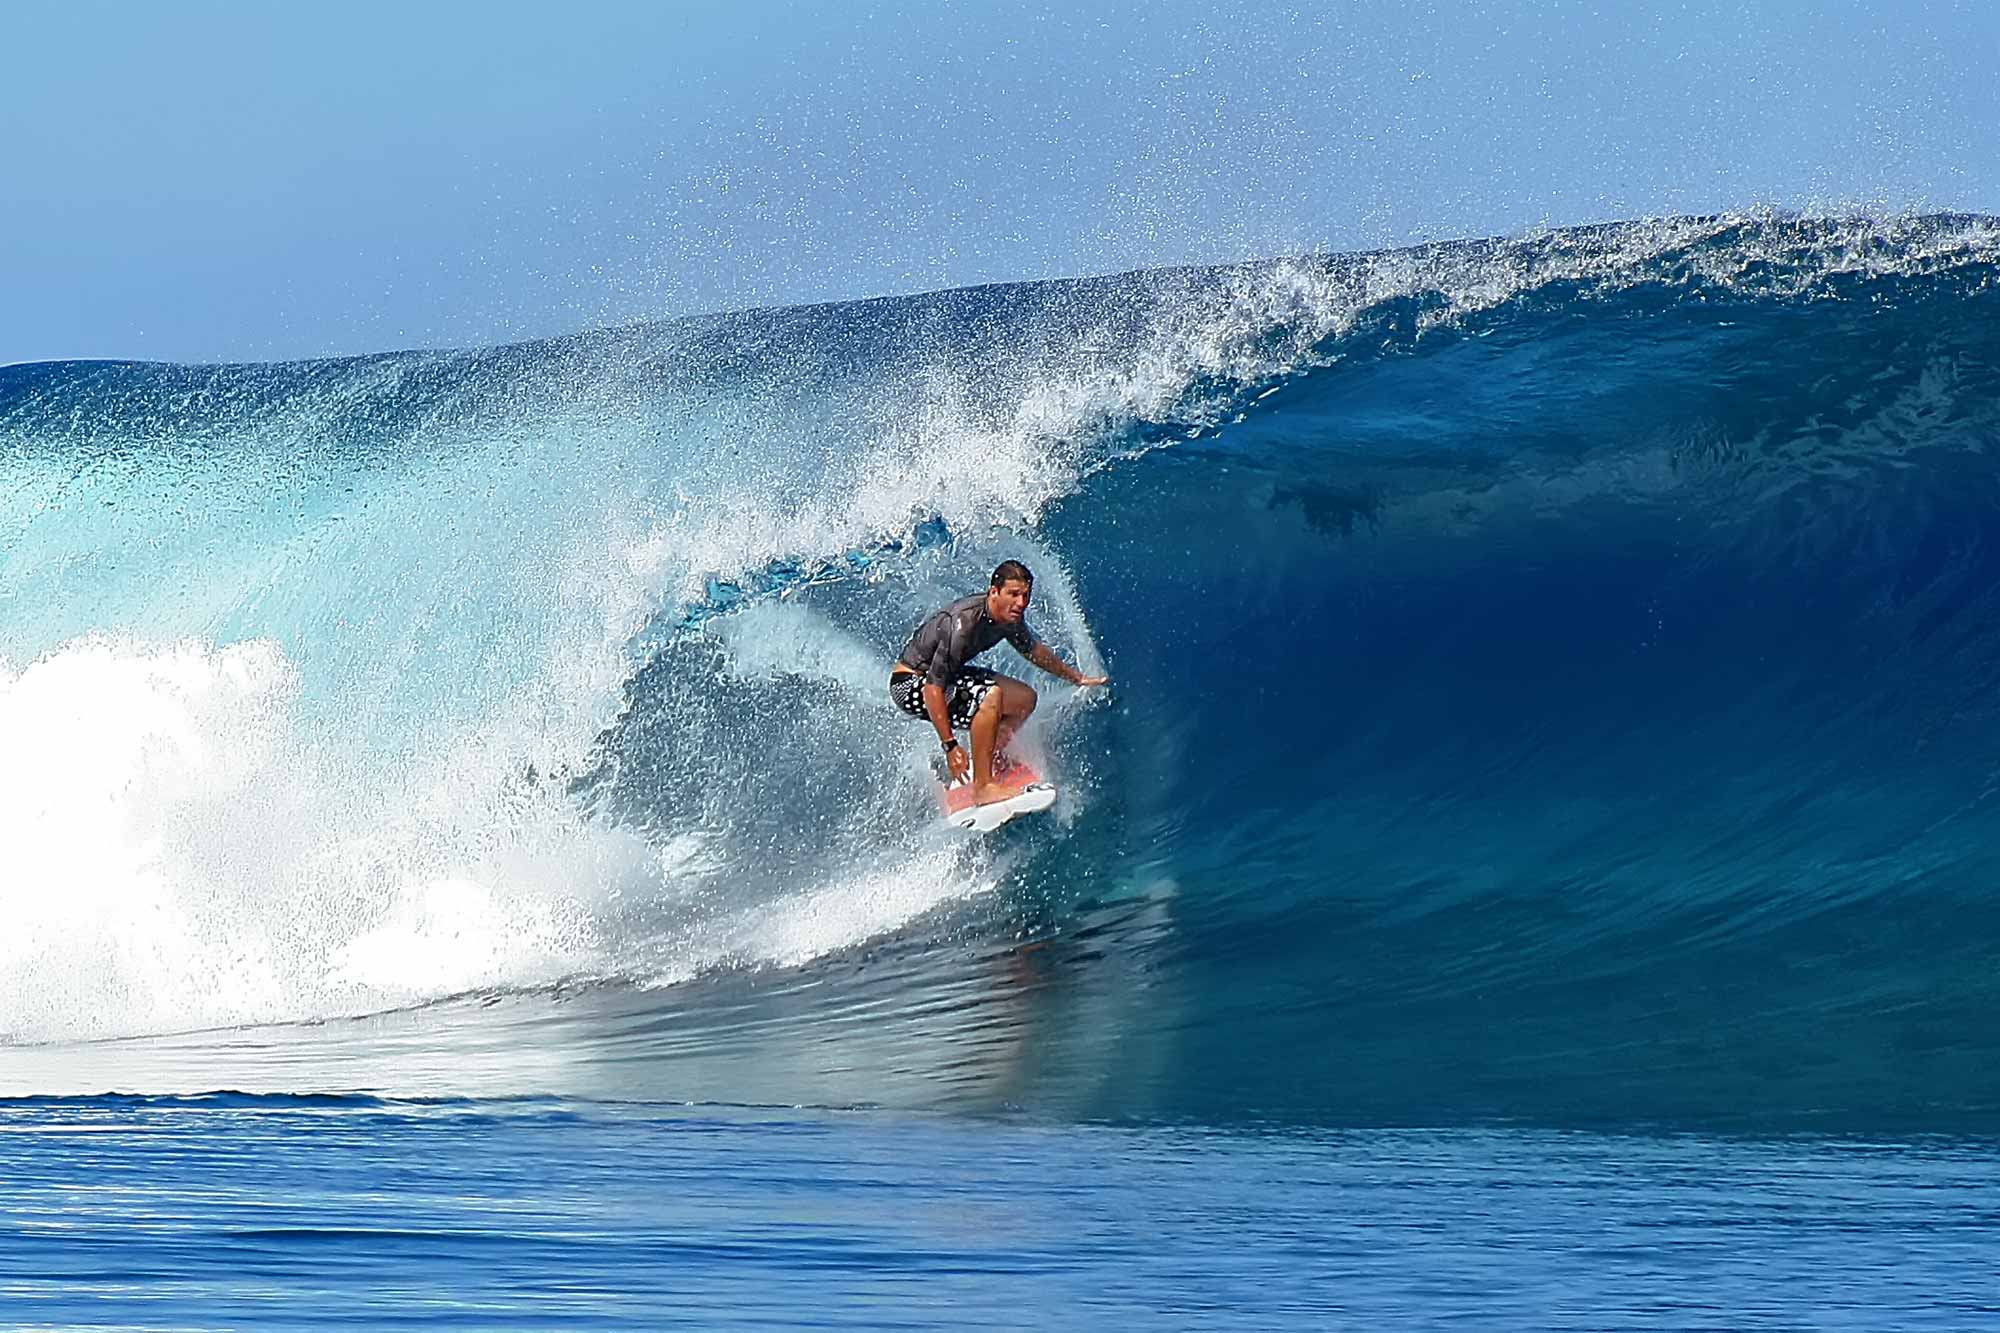 surfer-tube-riding-teahupoo-tahiti-french-polynesia